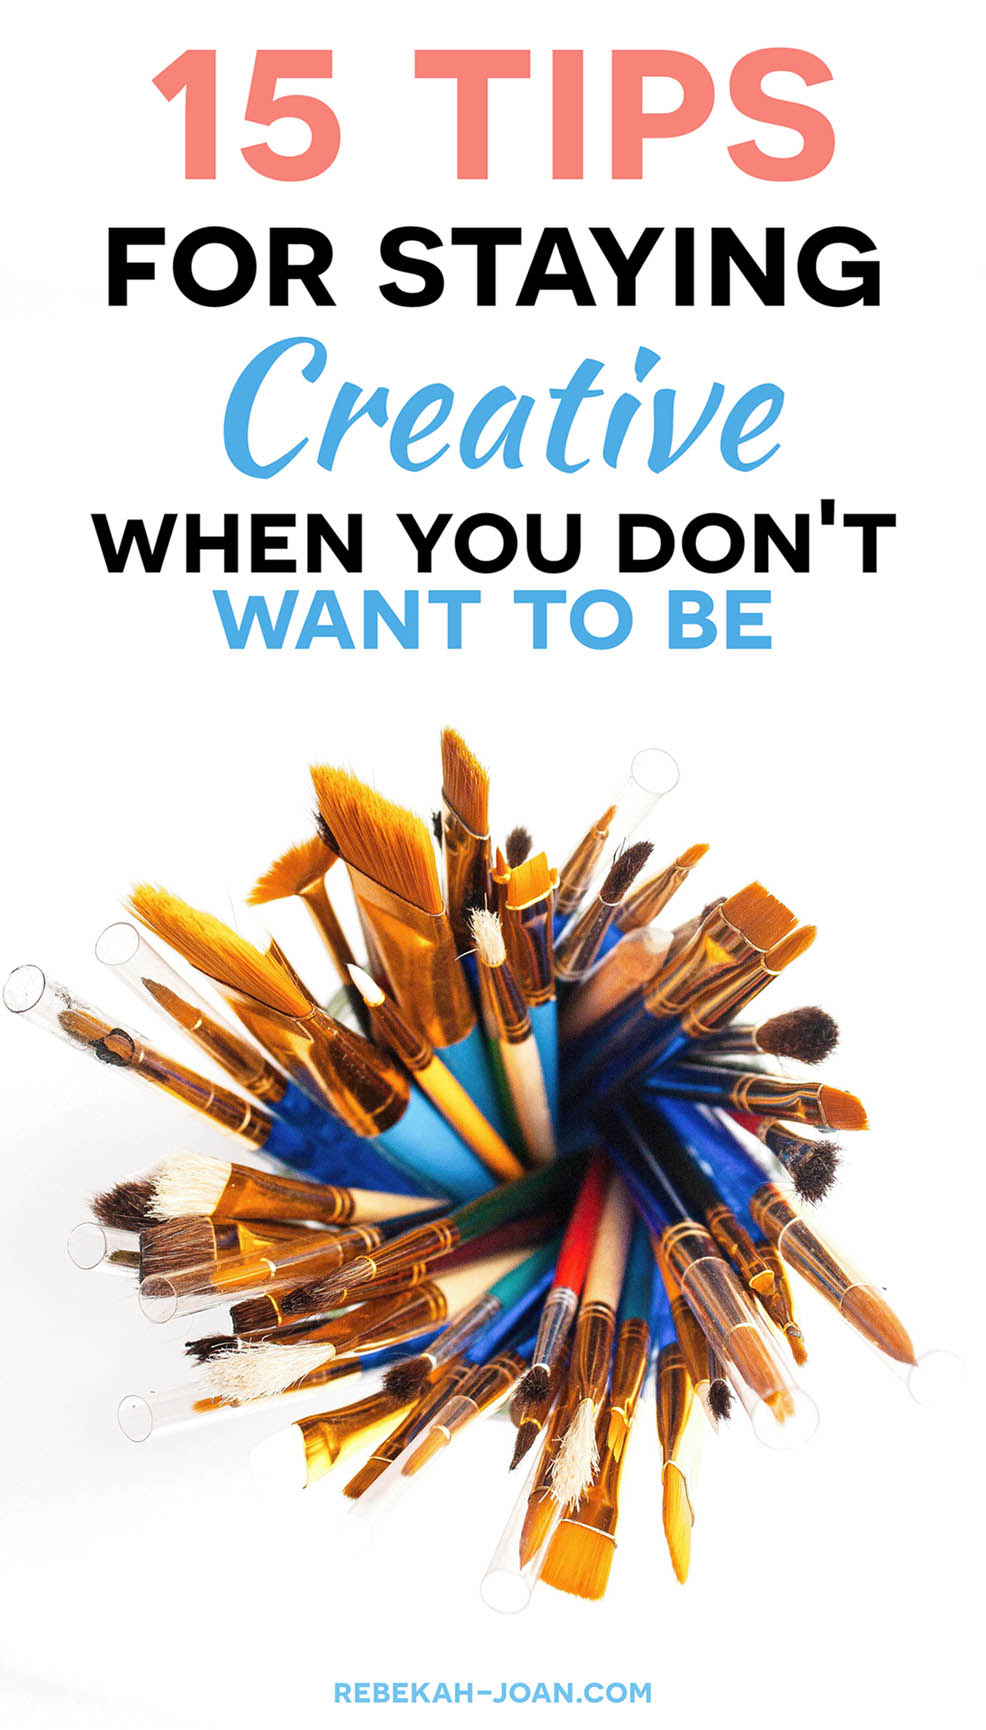 - As creatives, it's not always easy to stay motivated. We find ourselves searching for inspiration only to end up wasting our time. Today, I'm giving you my top tips for harnessing your creativity and putting it to work.